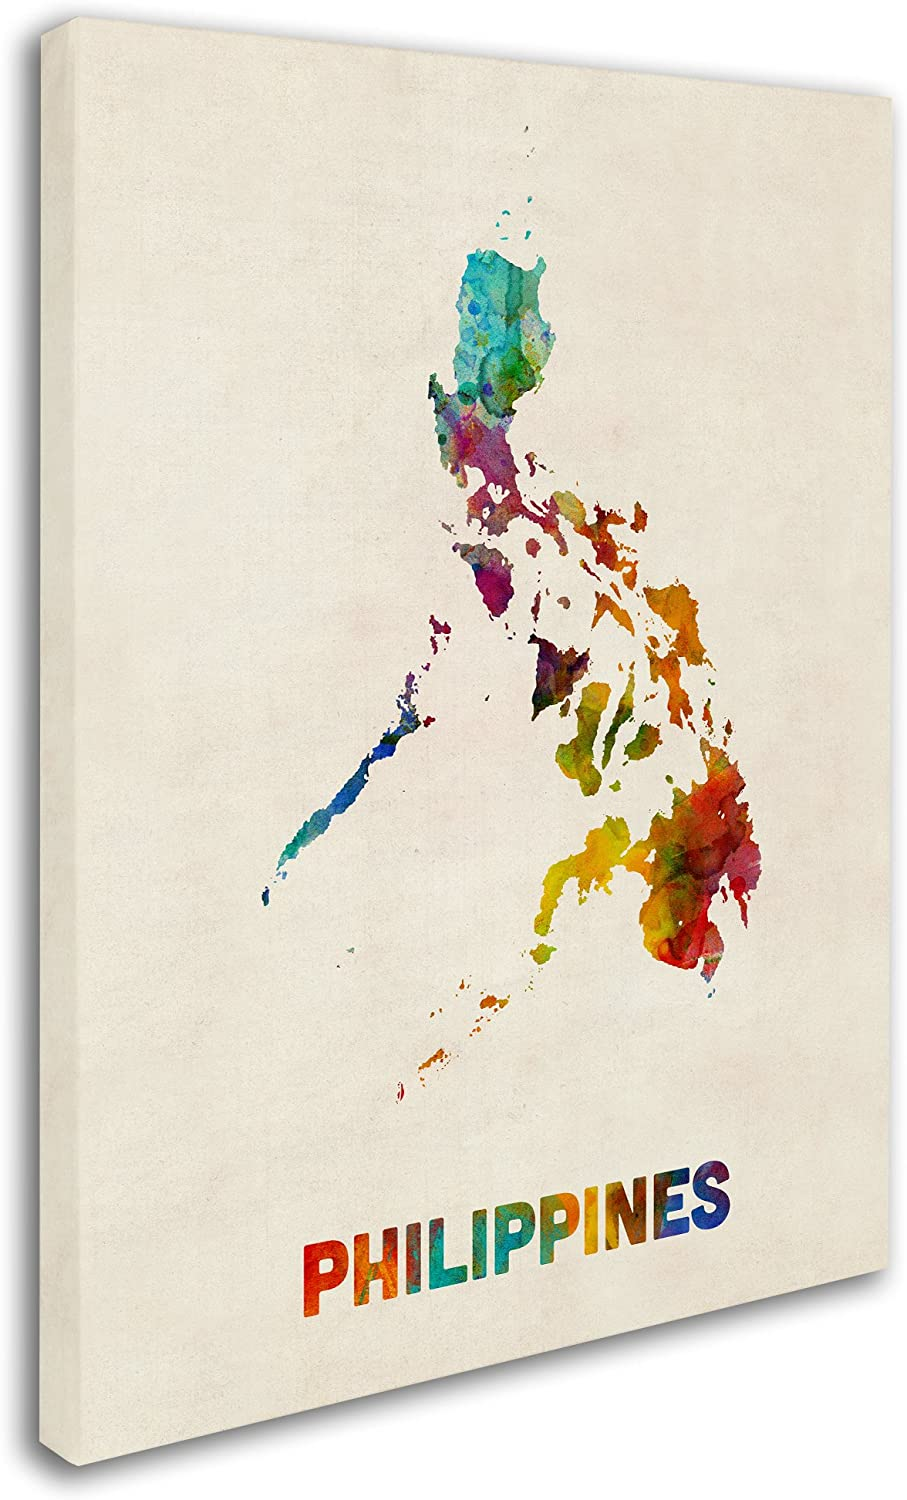 Philippines Watercolor Map By Michael Tompsett 14x19 Inch Canvas Wall Art Posters Prints Amazon Com